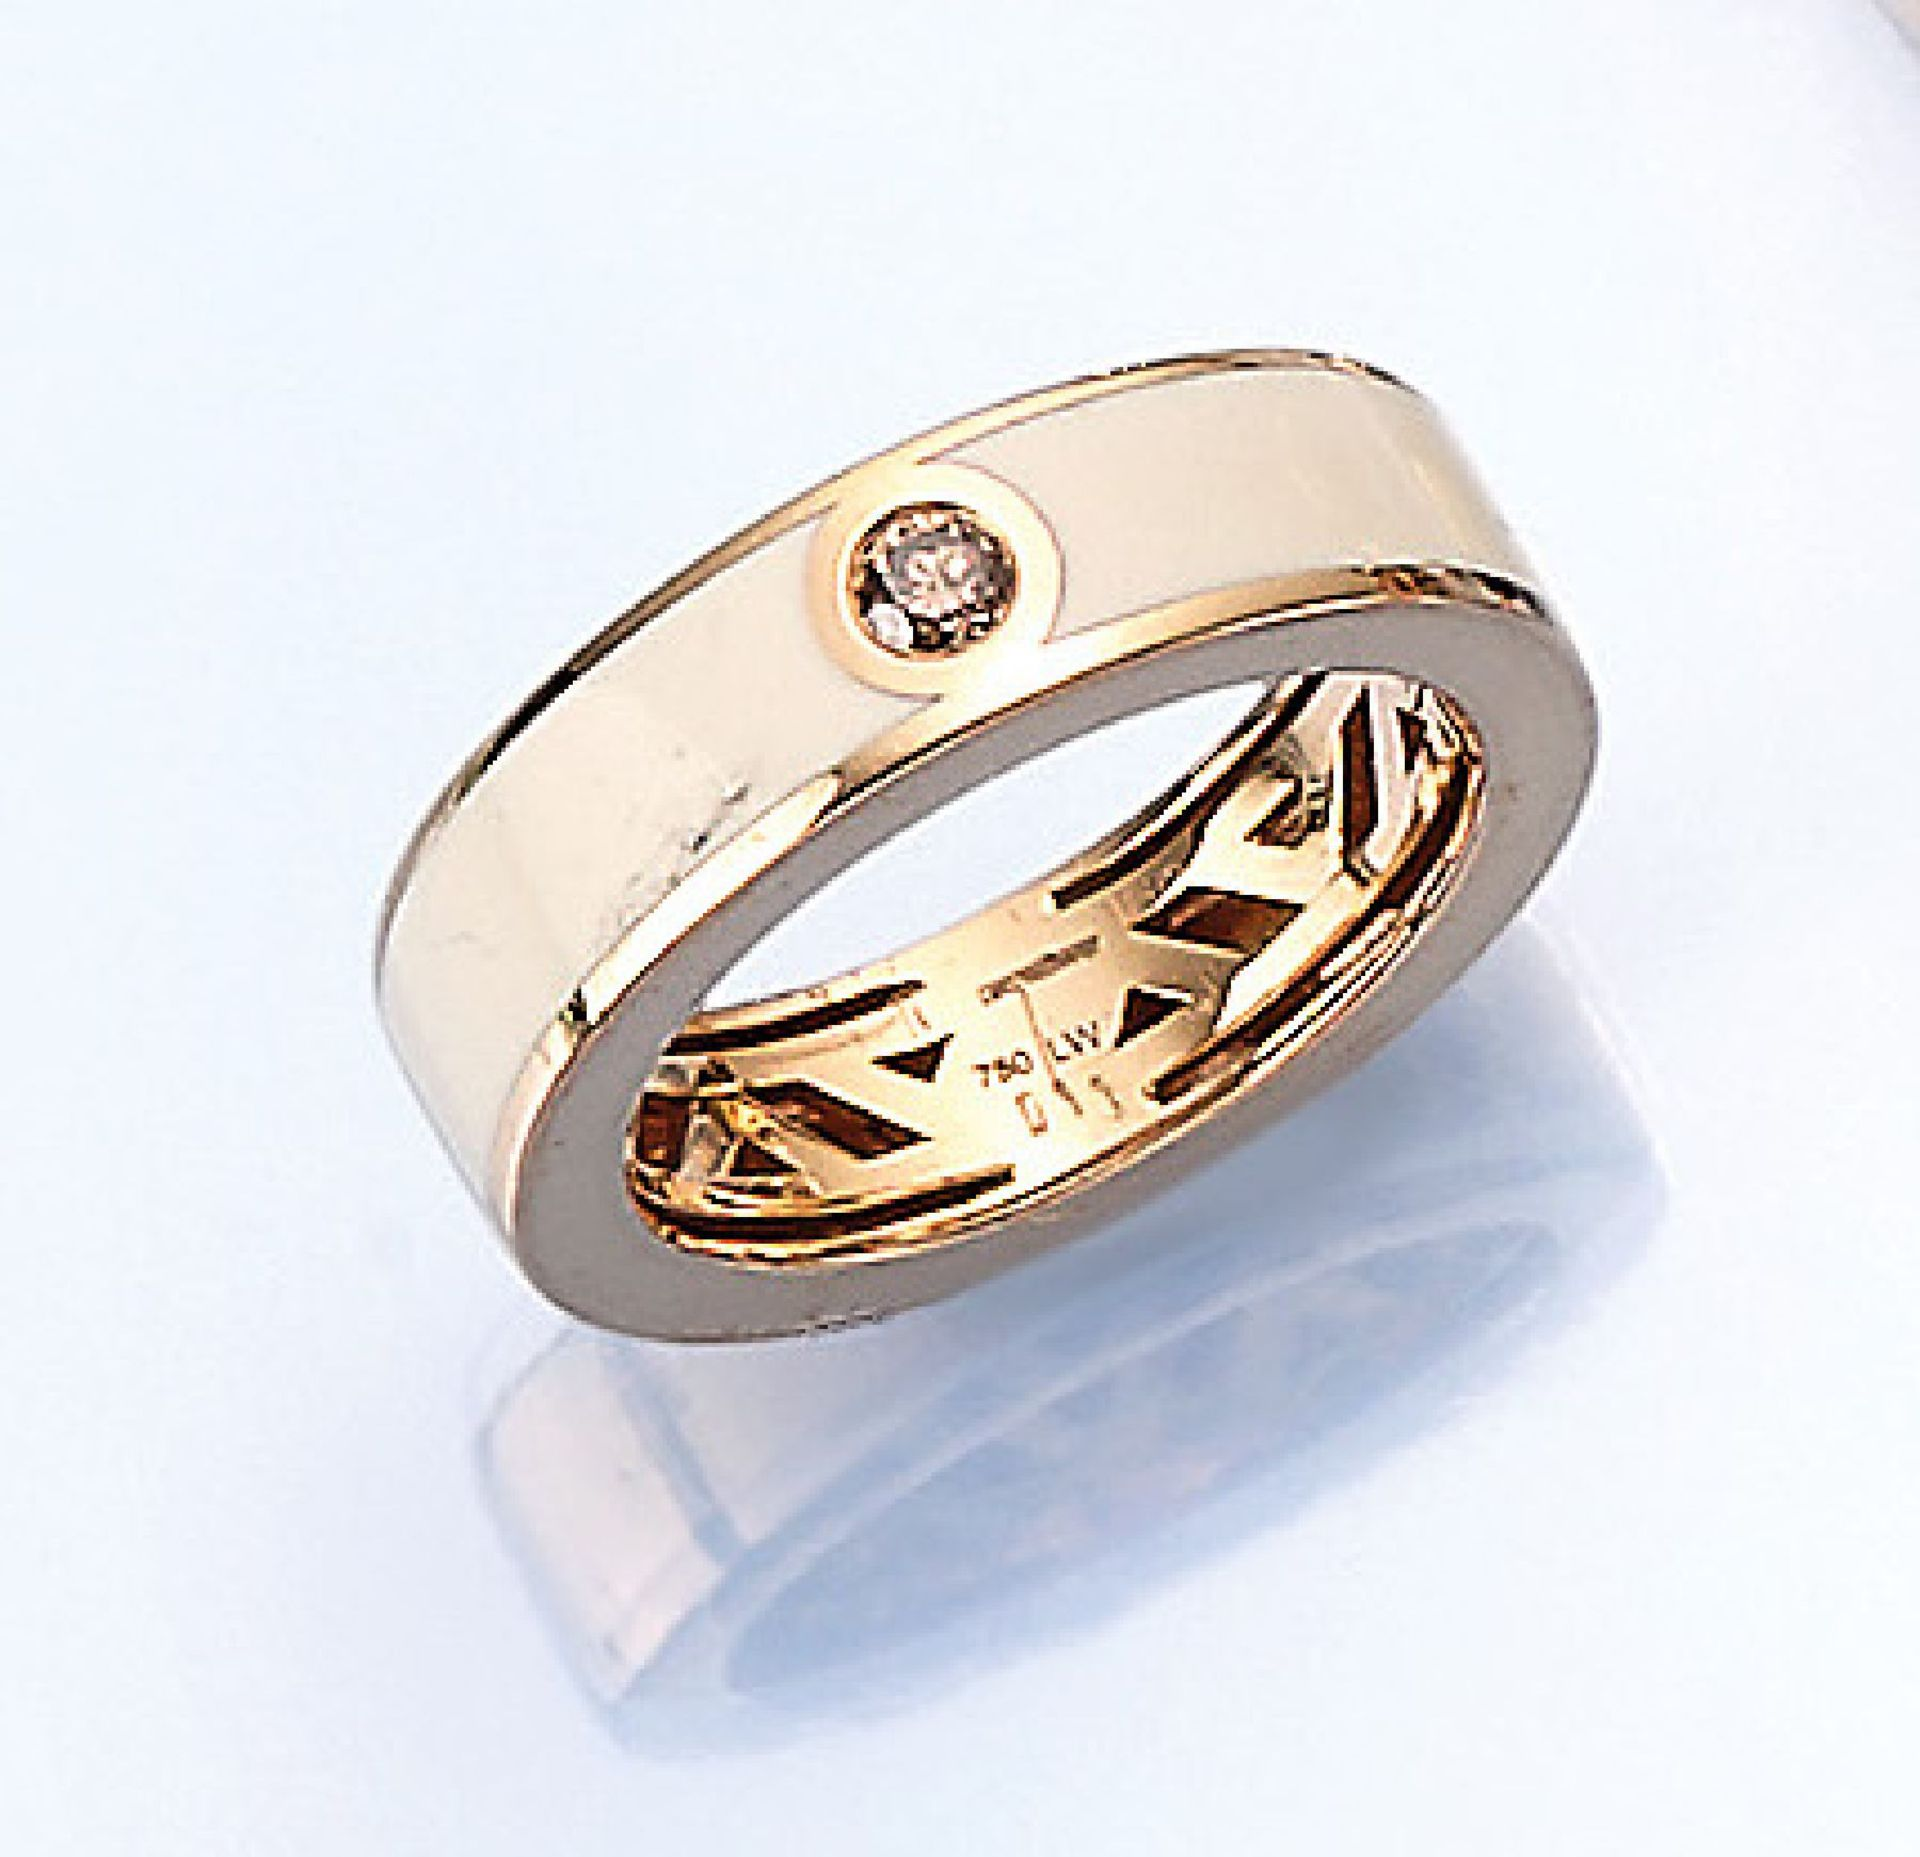 Los 61515 - 18 kt gold LEO WITTWER ring with enamel and brilliant , YG 750/000, white enameled, brilliant